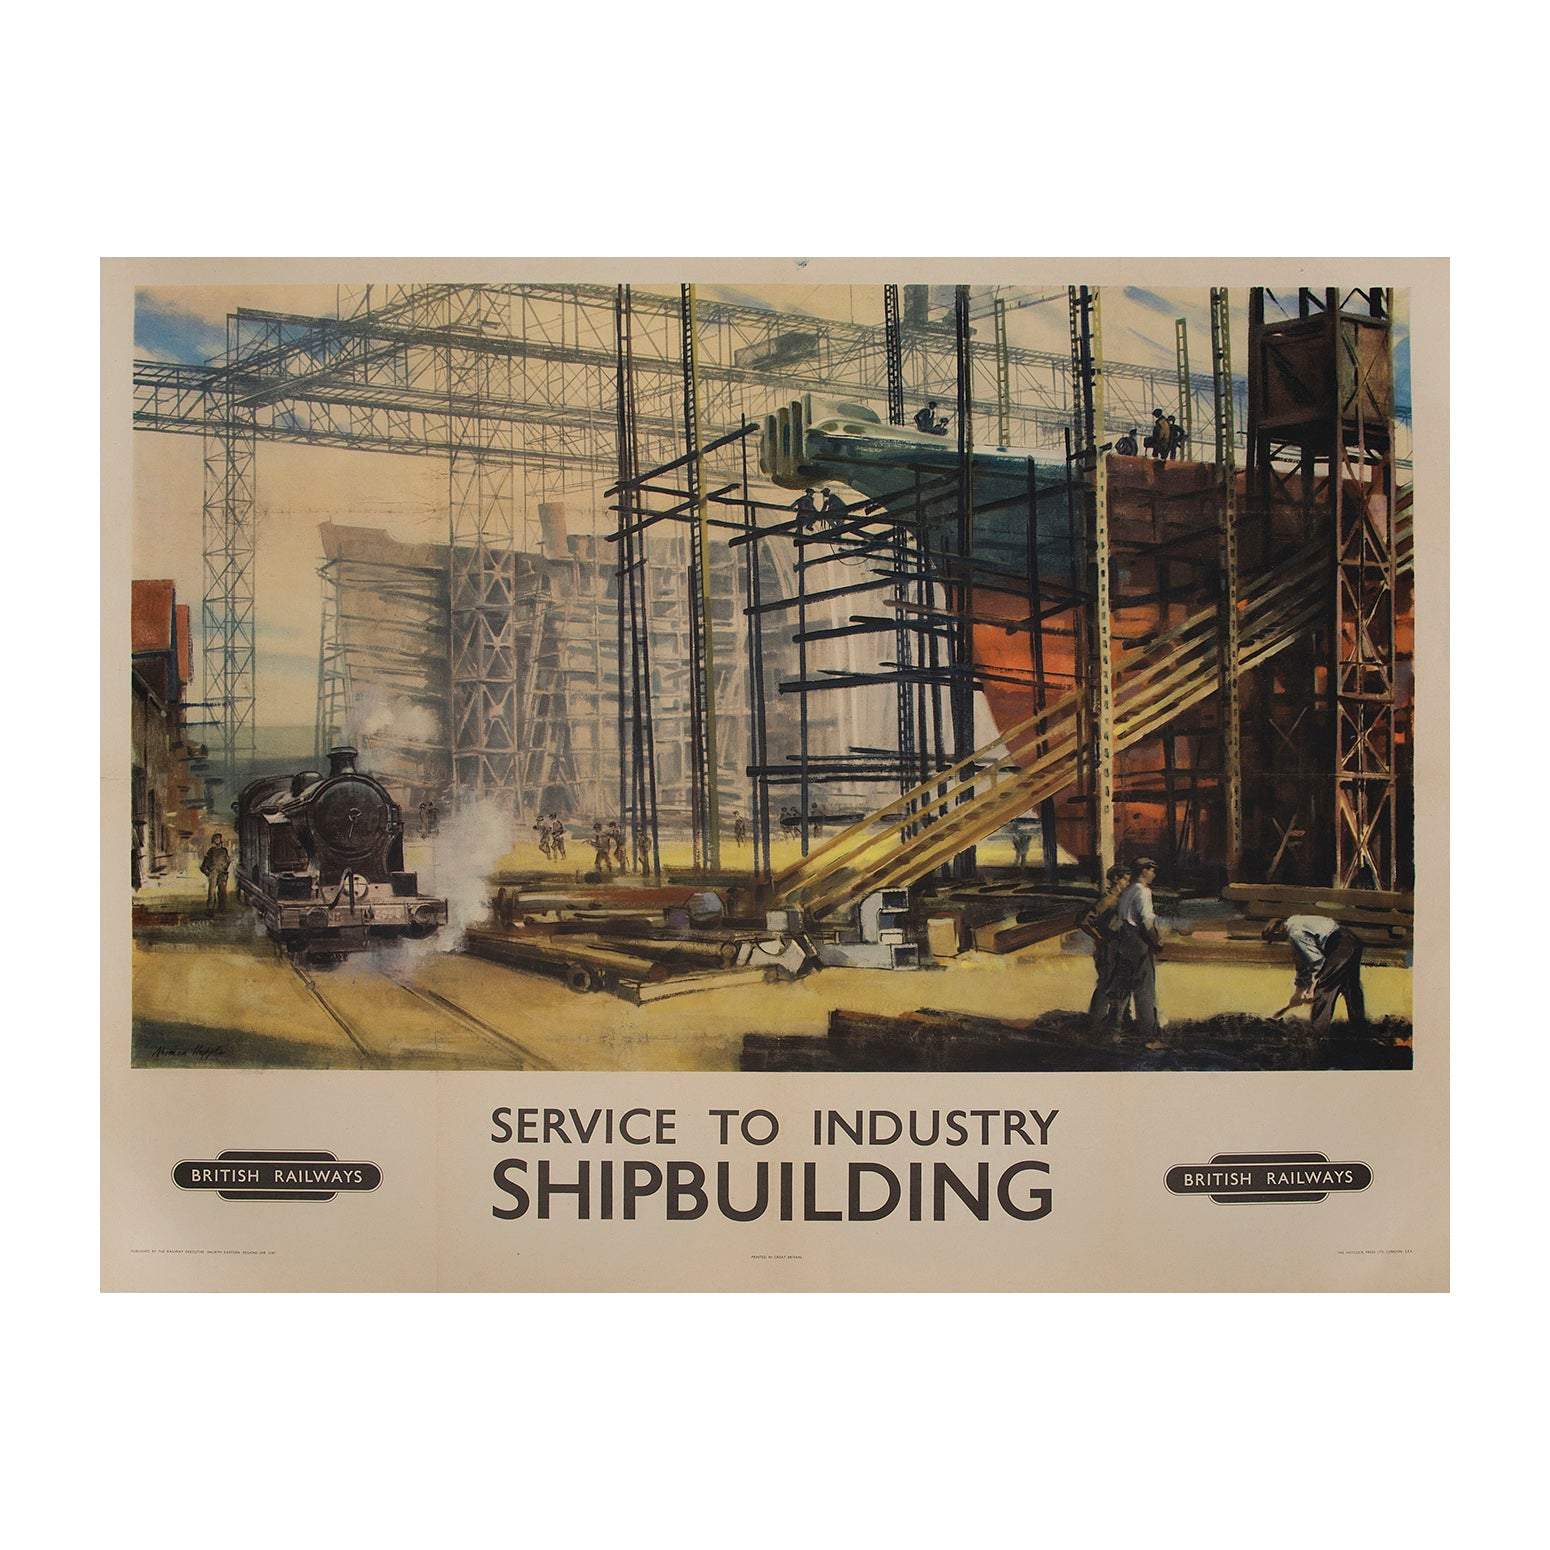 Service to Industry. Shipbuilding